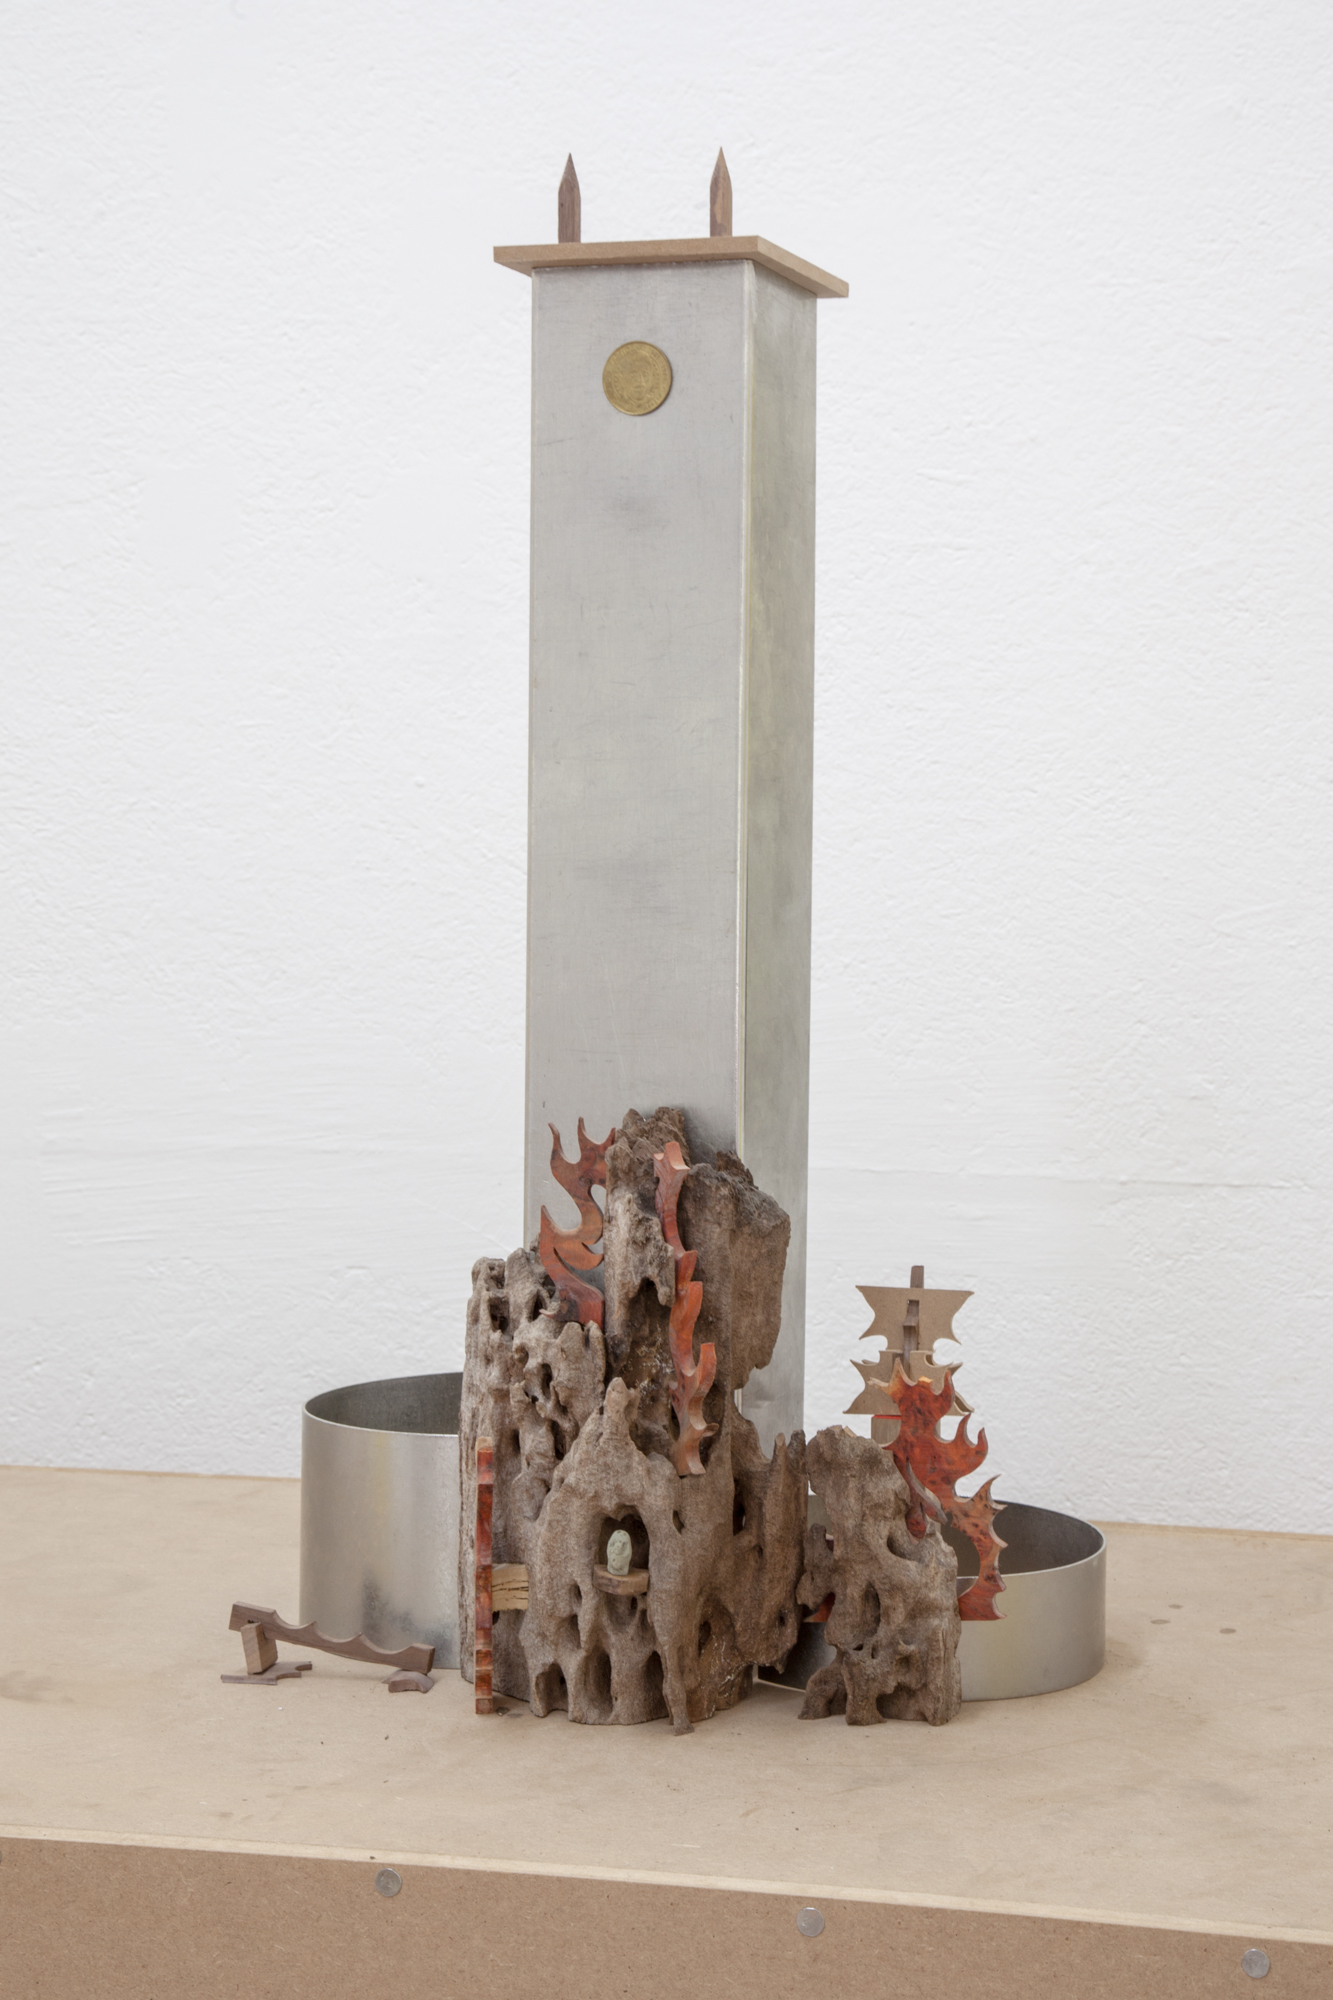 Harry Gould Harvey IV,  Reagan Klan , 2018, Foraged Wormy Apple Wood From Former Citibank™ Founder's Estate, Clay Foraged, from Swans Island, Sunoco™ Millennium Commemorative Coins, Chakta Viga Burl, and Scrap Metal from Whole Foods™, 26 x 16 x 11 inches